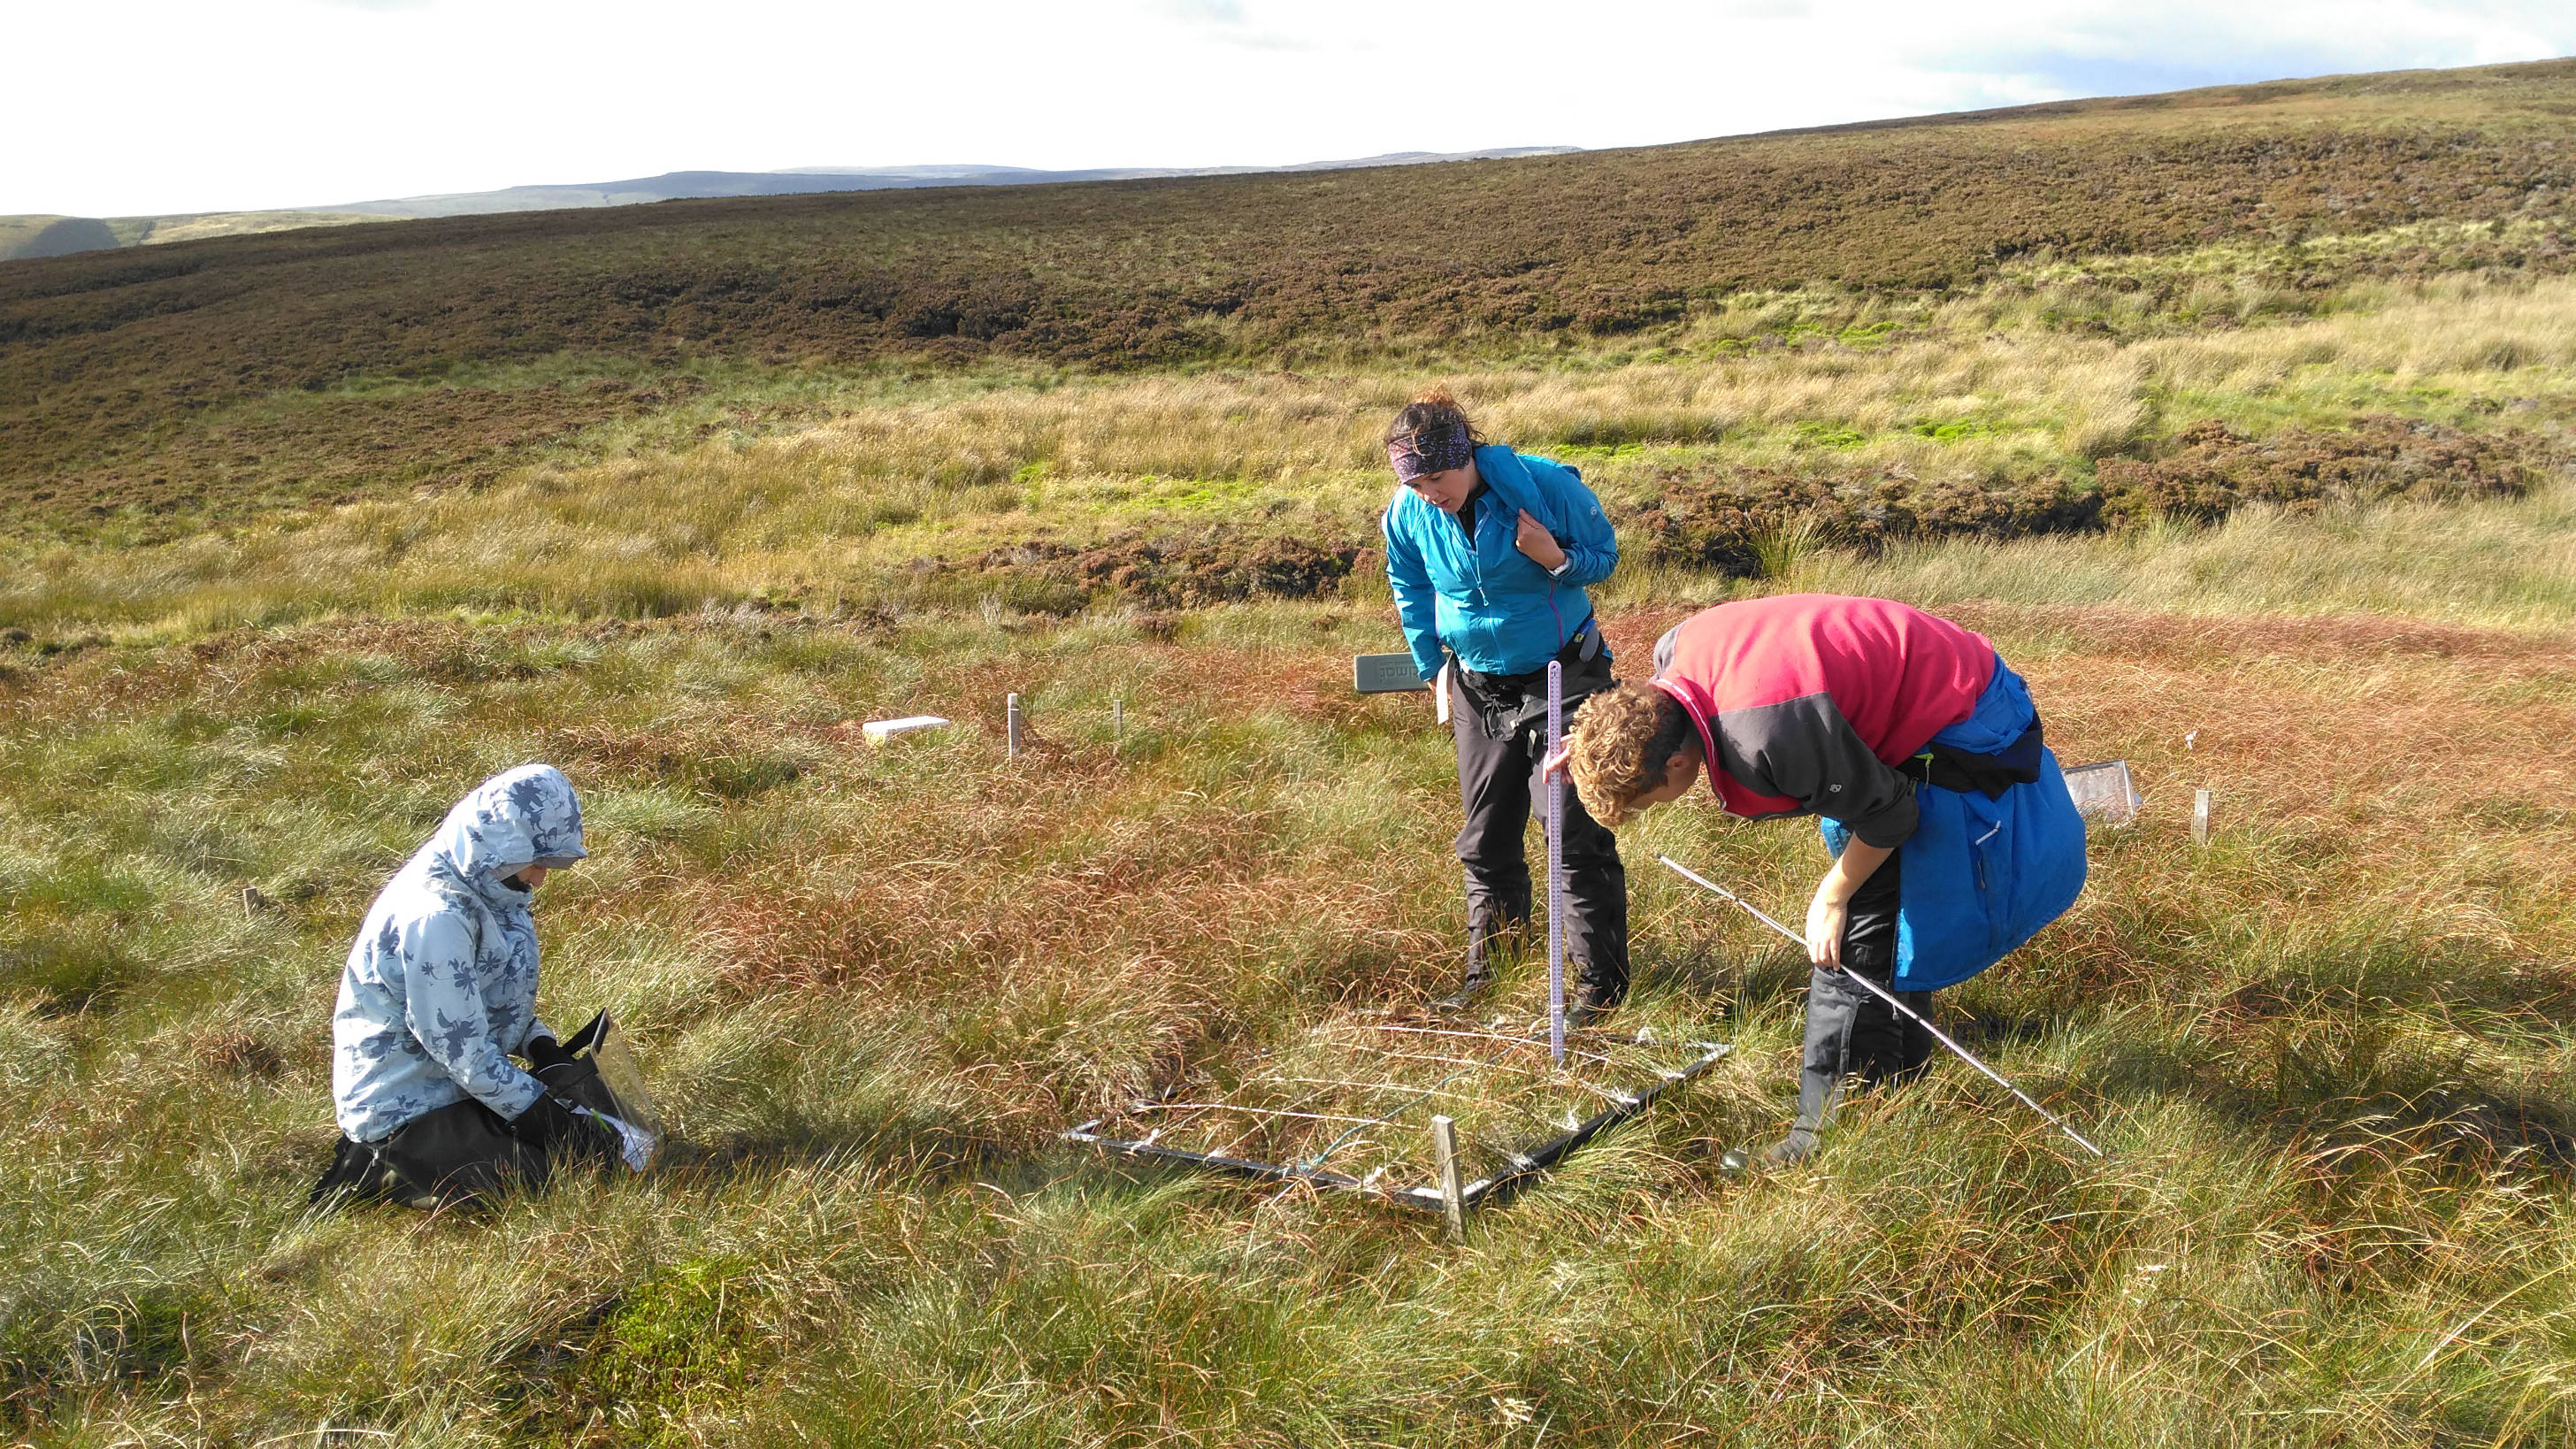 Working with University of York on Defra bog project